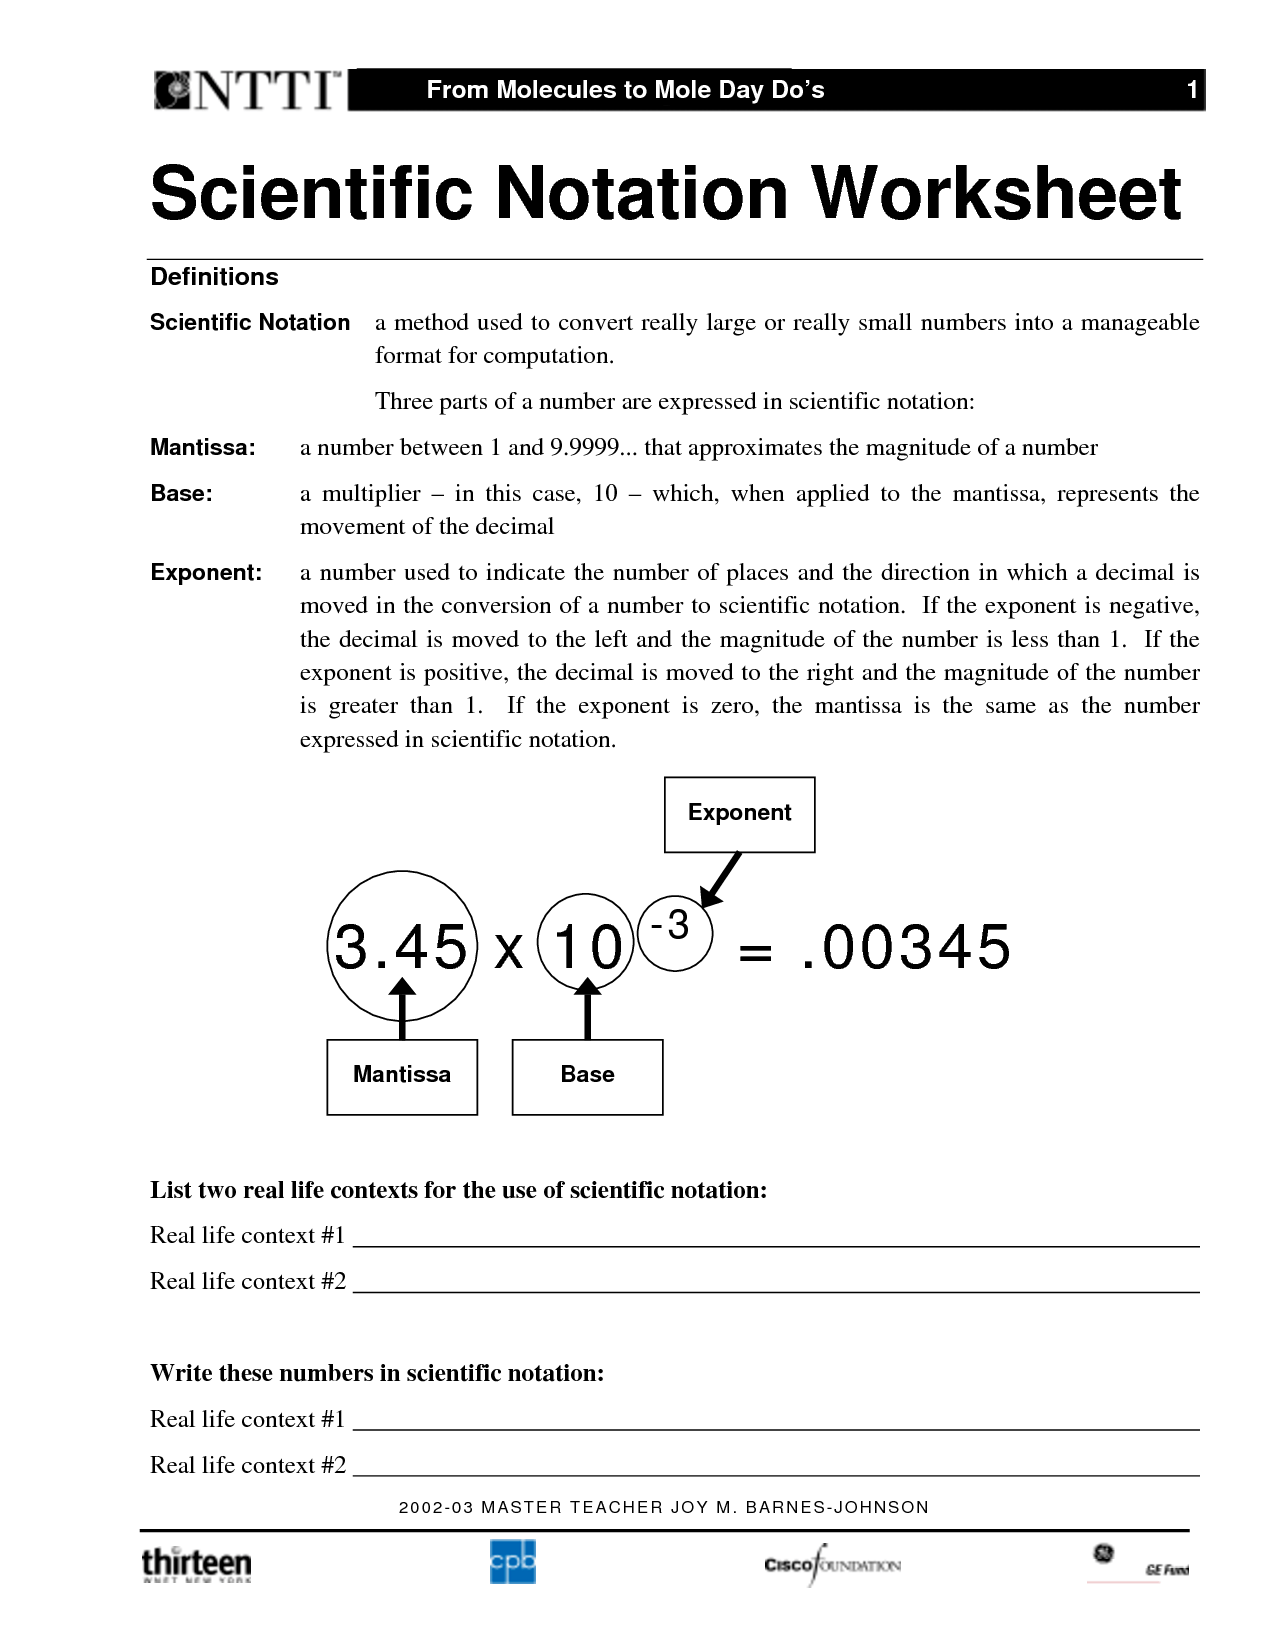 Scientific Notation Operations Worksheets Free